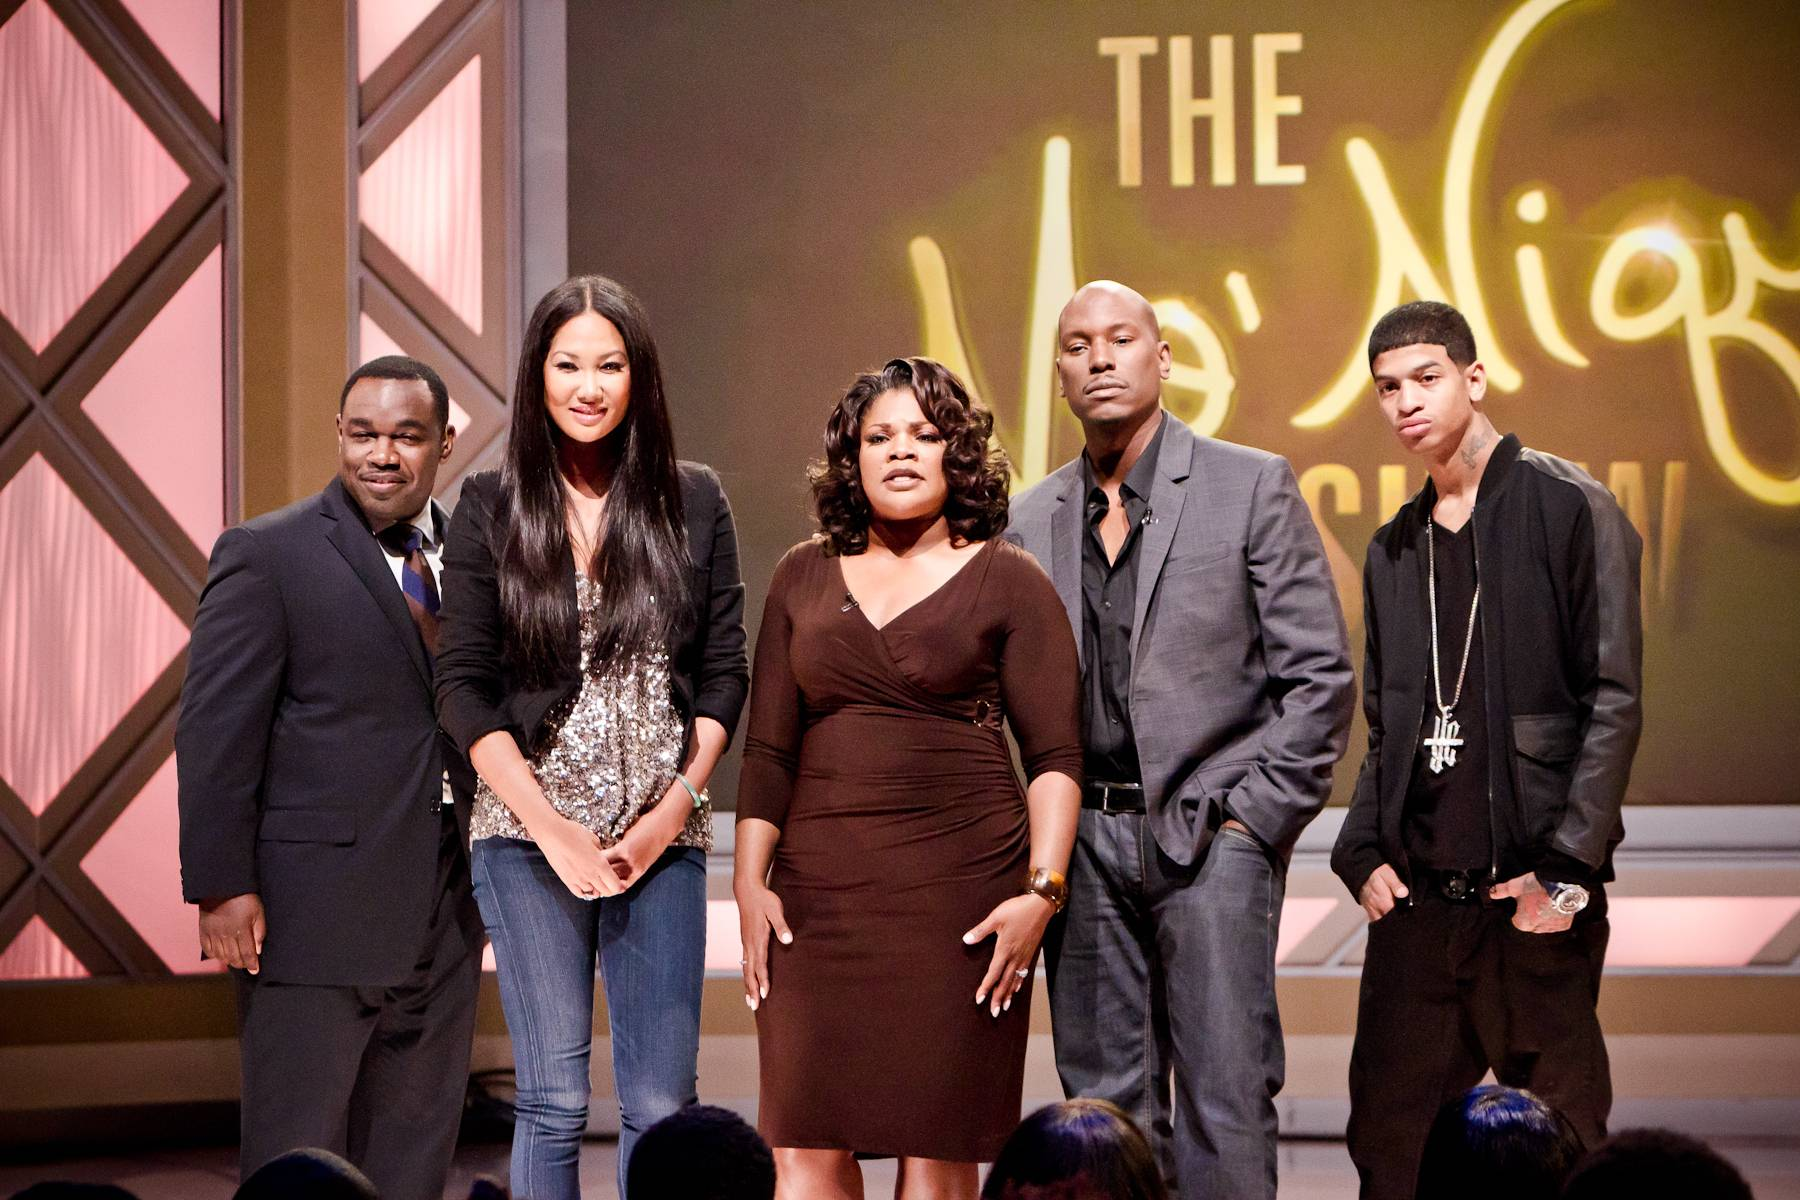 Farewell to Another Great Episode! - From left: Rodney Perry, Kimora Lee Simmons, Mo'Nique, Tyrese and YC.(Photo: Darnell Williams/BET)